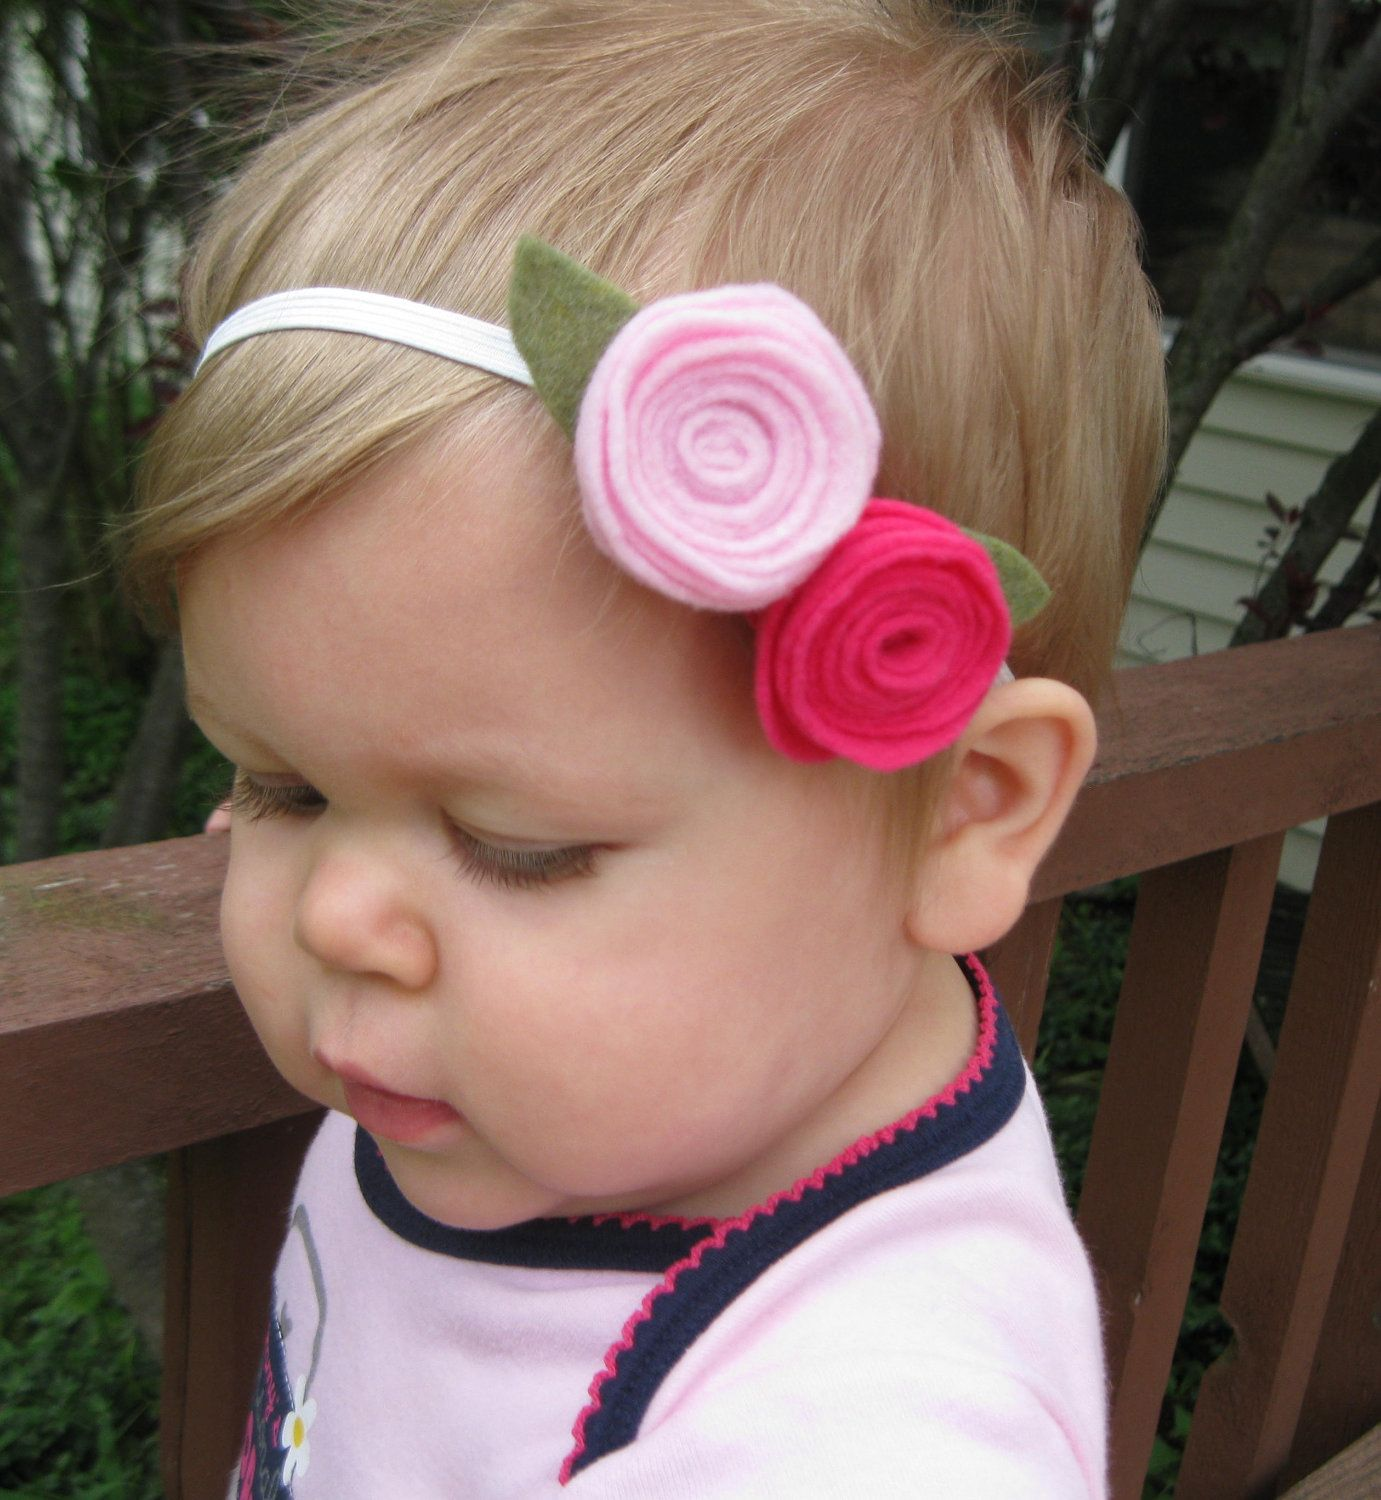 Pink Double Rosette Felt Flower Elastic Headband - Baby Girl, Toddler, Girl via Etsy.